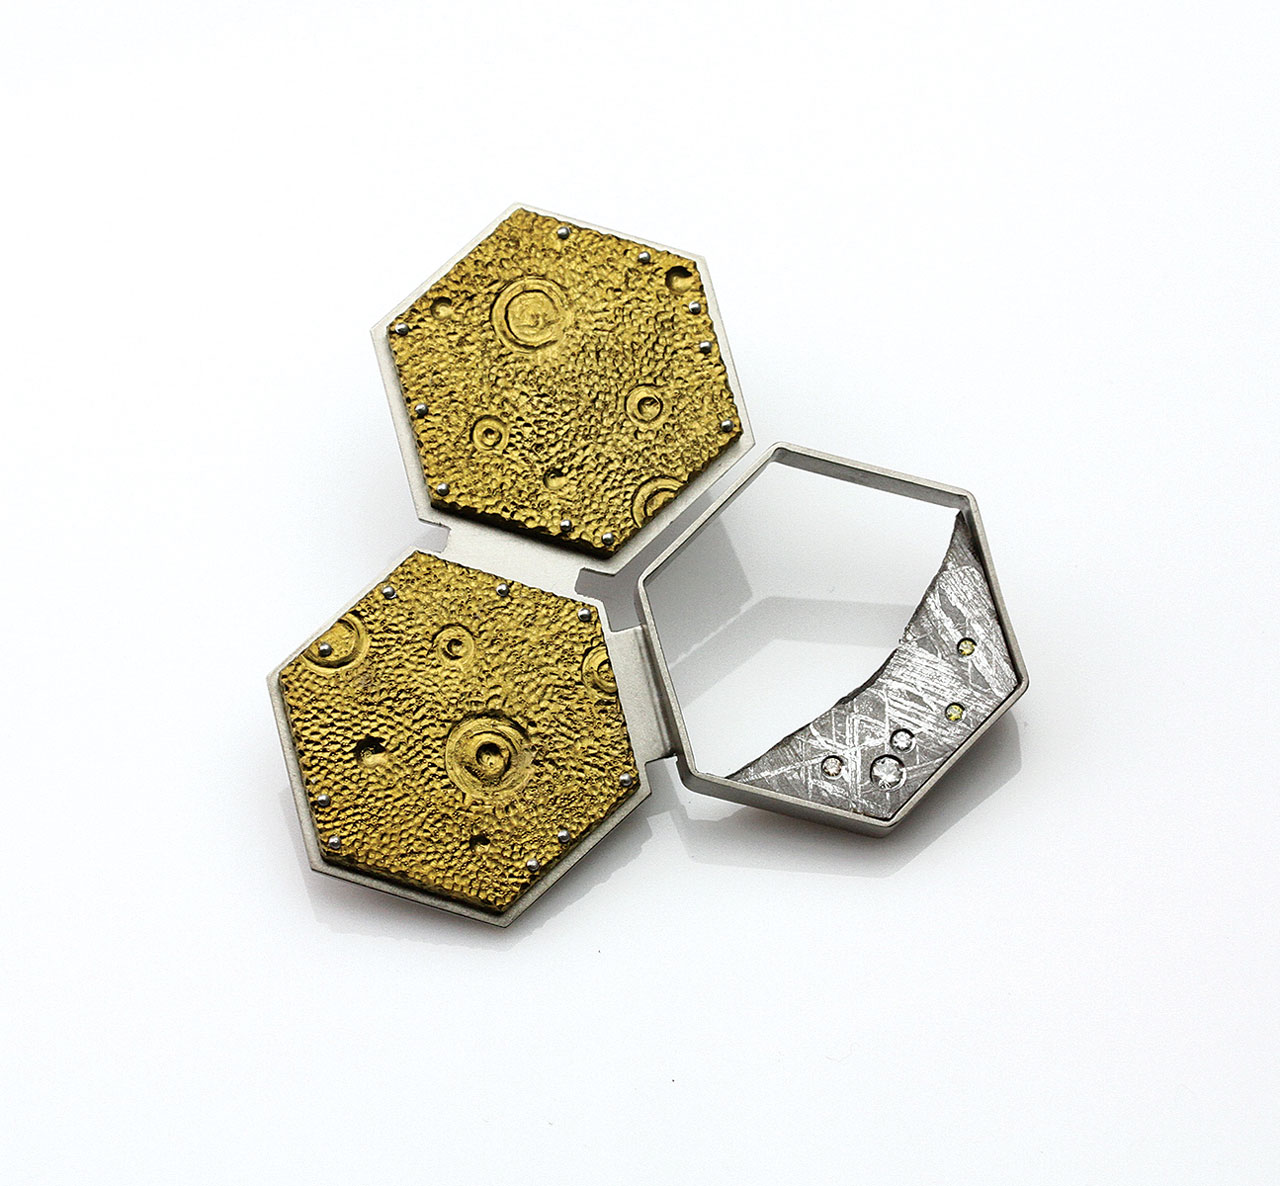 SUPERNUS OBJECTUM #3 BROOCH BY KIRK LANG of titanium, meteorite and diamonds; 5.4 x 5.4 x 1.27 centimeters.